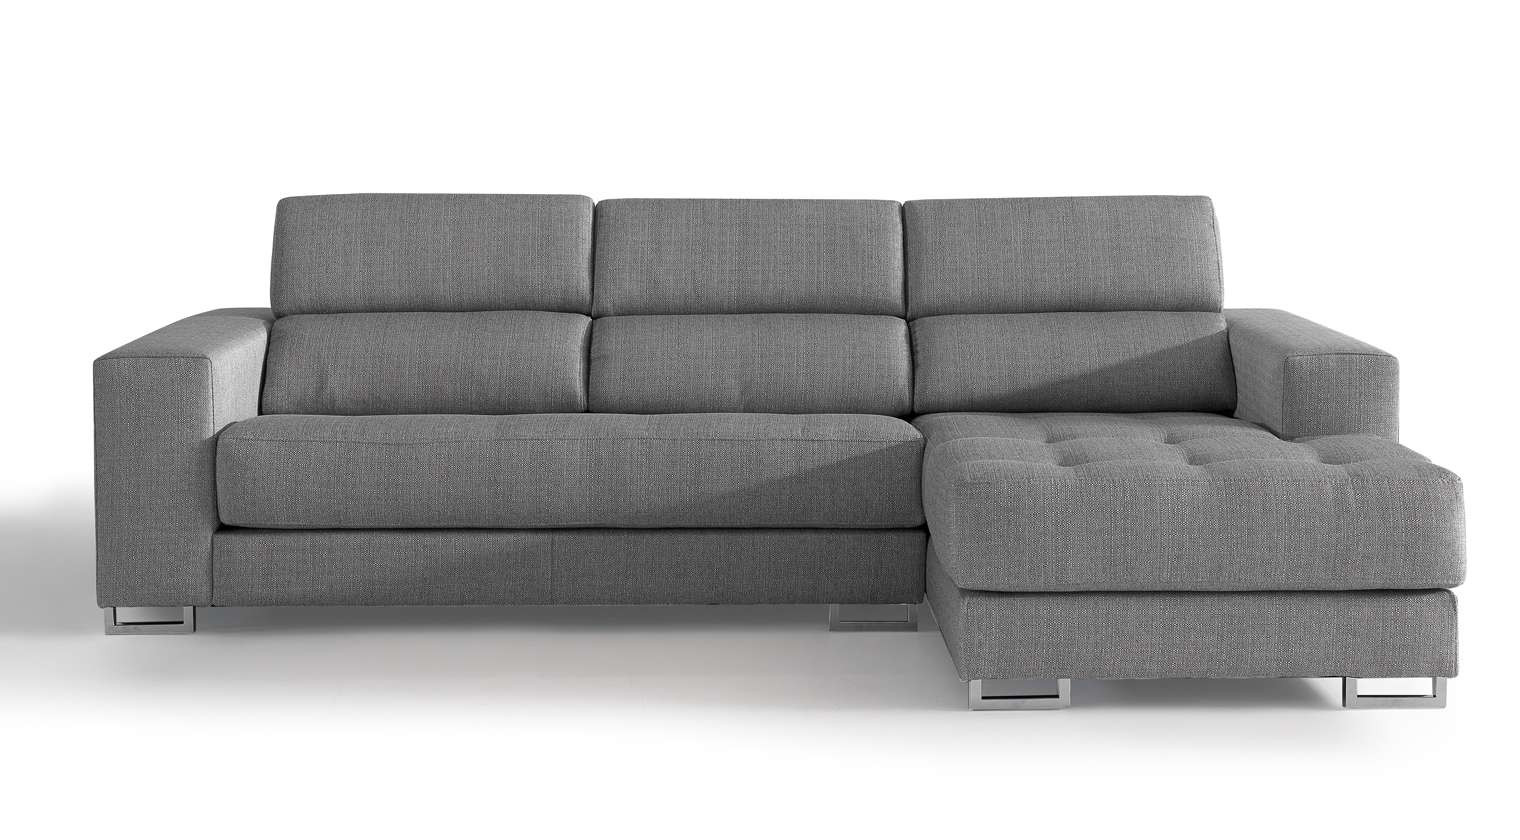 Sofa Chaise Longue 4 Plazas Único Prar Chaise Longue Tela Lleida Mod sofa 4 Plazas Chaise Of 47  Único sofa Chaise Longue 4 Plazas